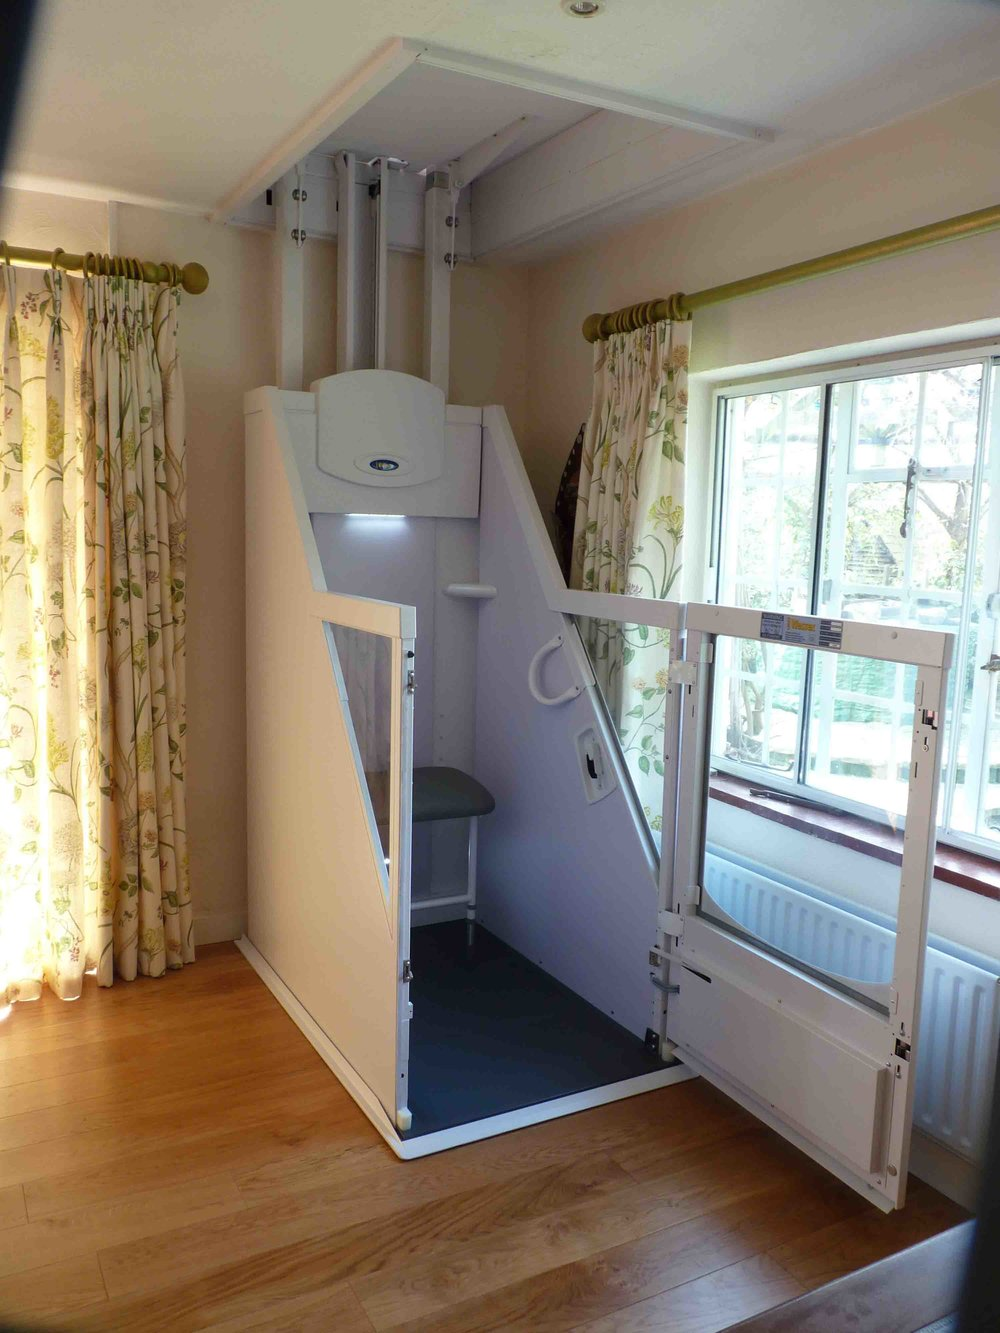 Wessex VM Home lifts